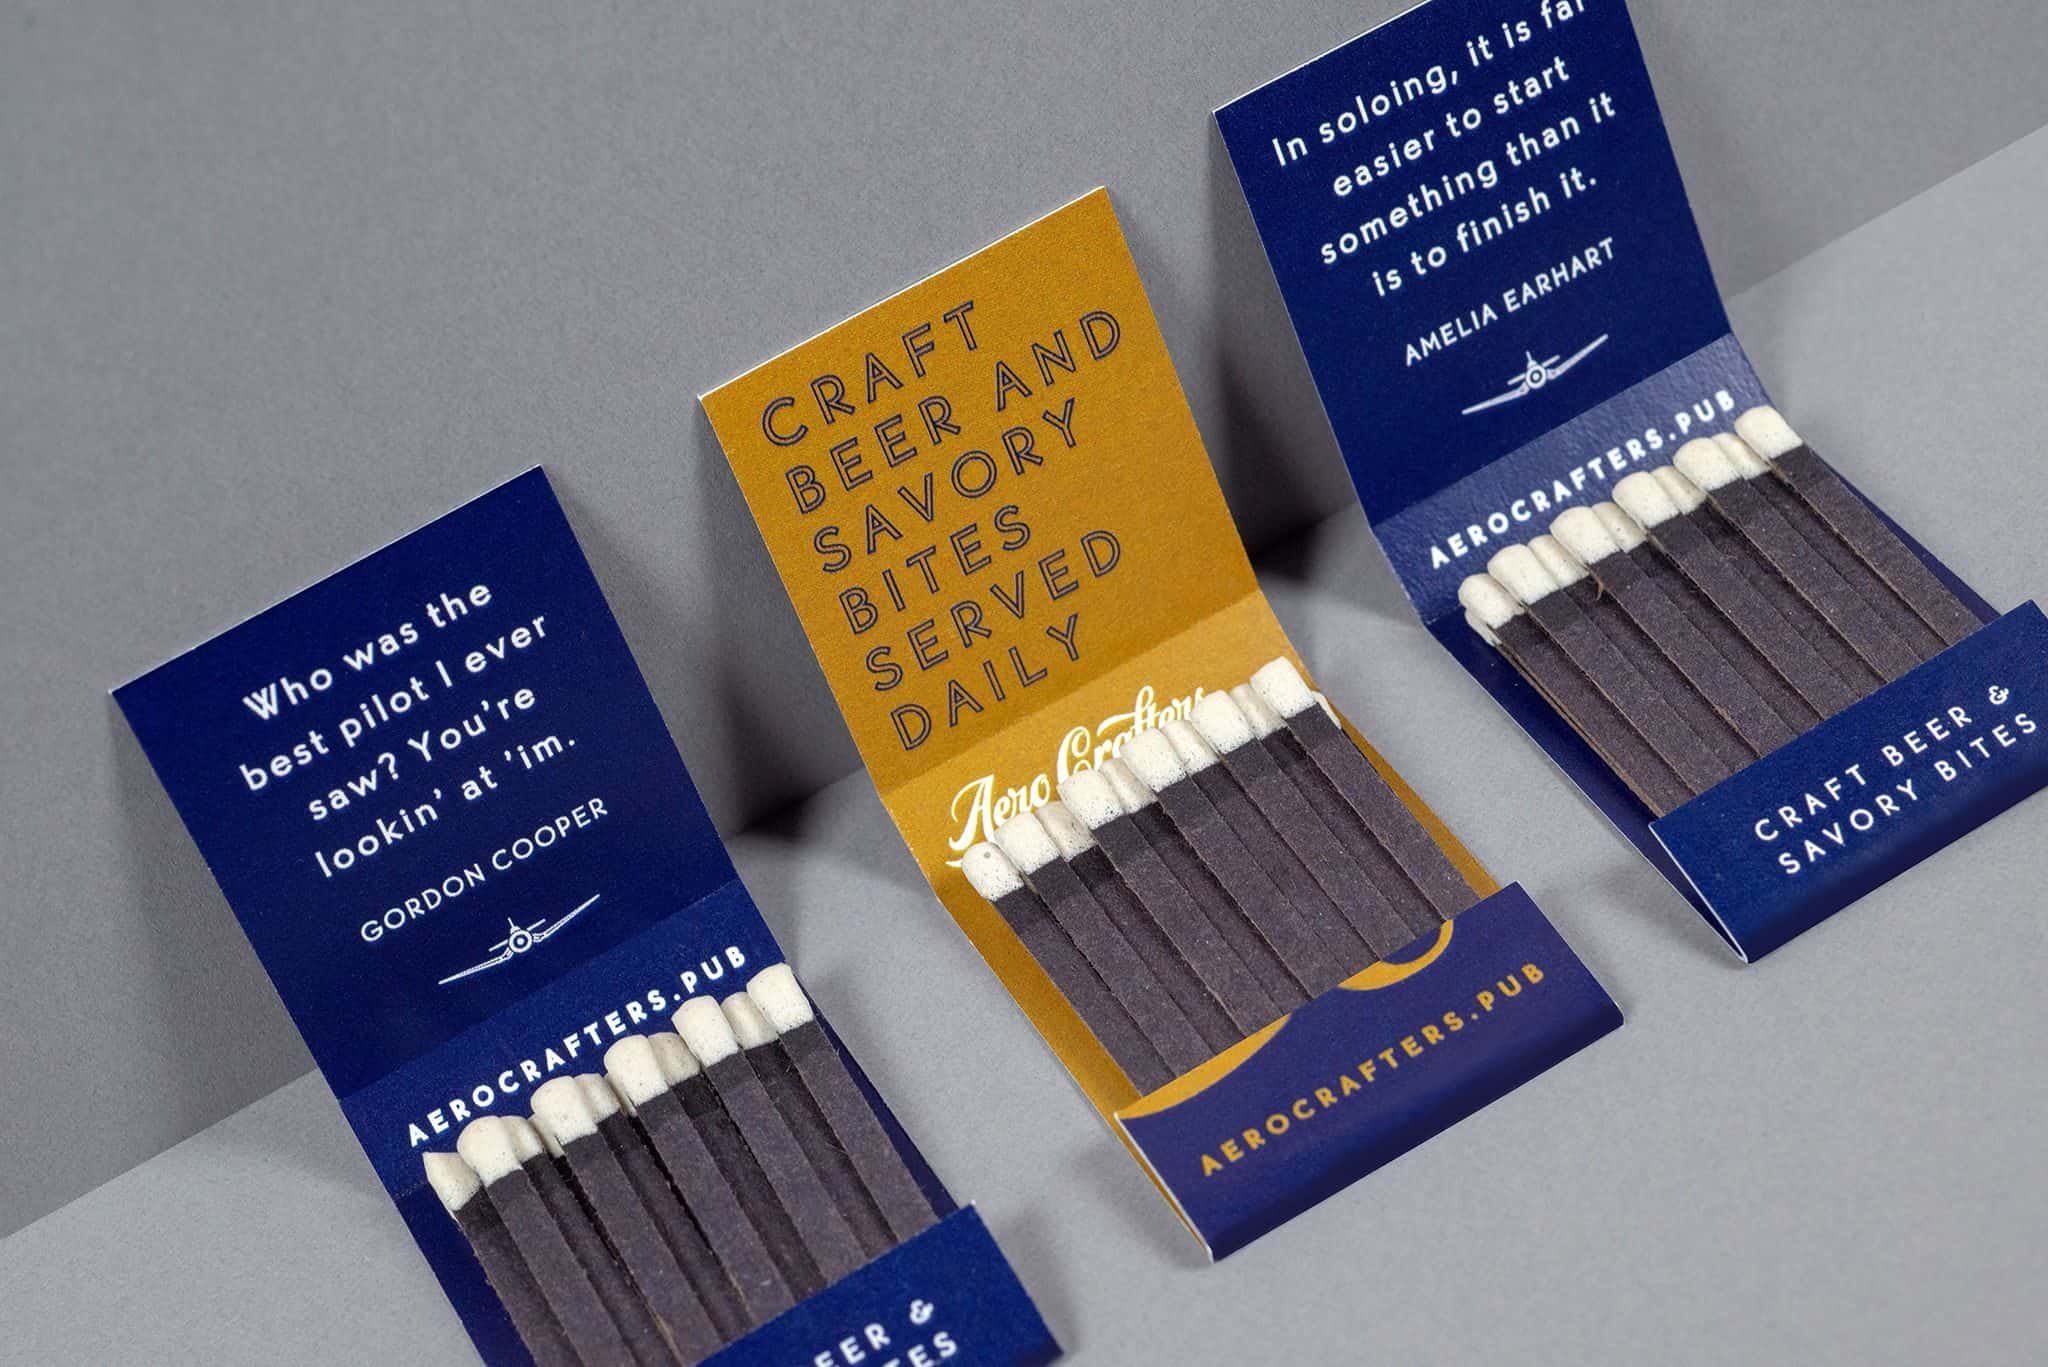 Custom matchbook set for Aero Crafters Beer Garden, Victoria | Designed by Field of Study: A branding and graphic design consultancy | Houston TX | Jennifer Blanco & John Earles